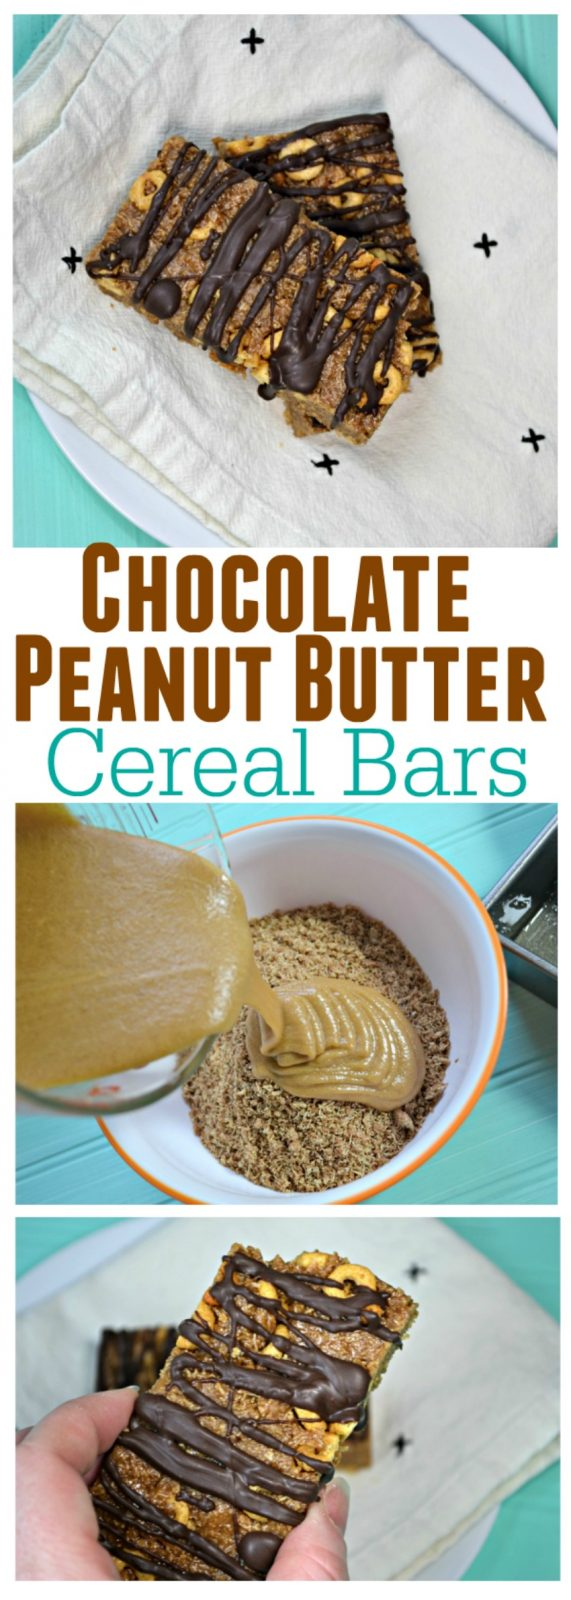 Peanut Butter Chocolate Homemade Cereal Bars - The Cards ...